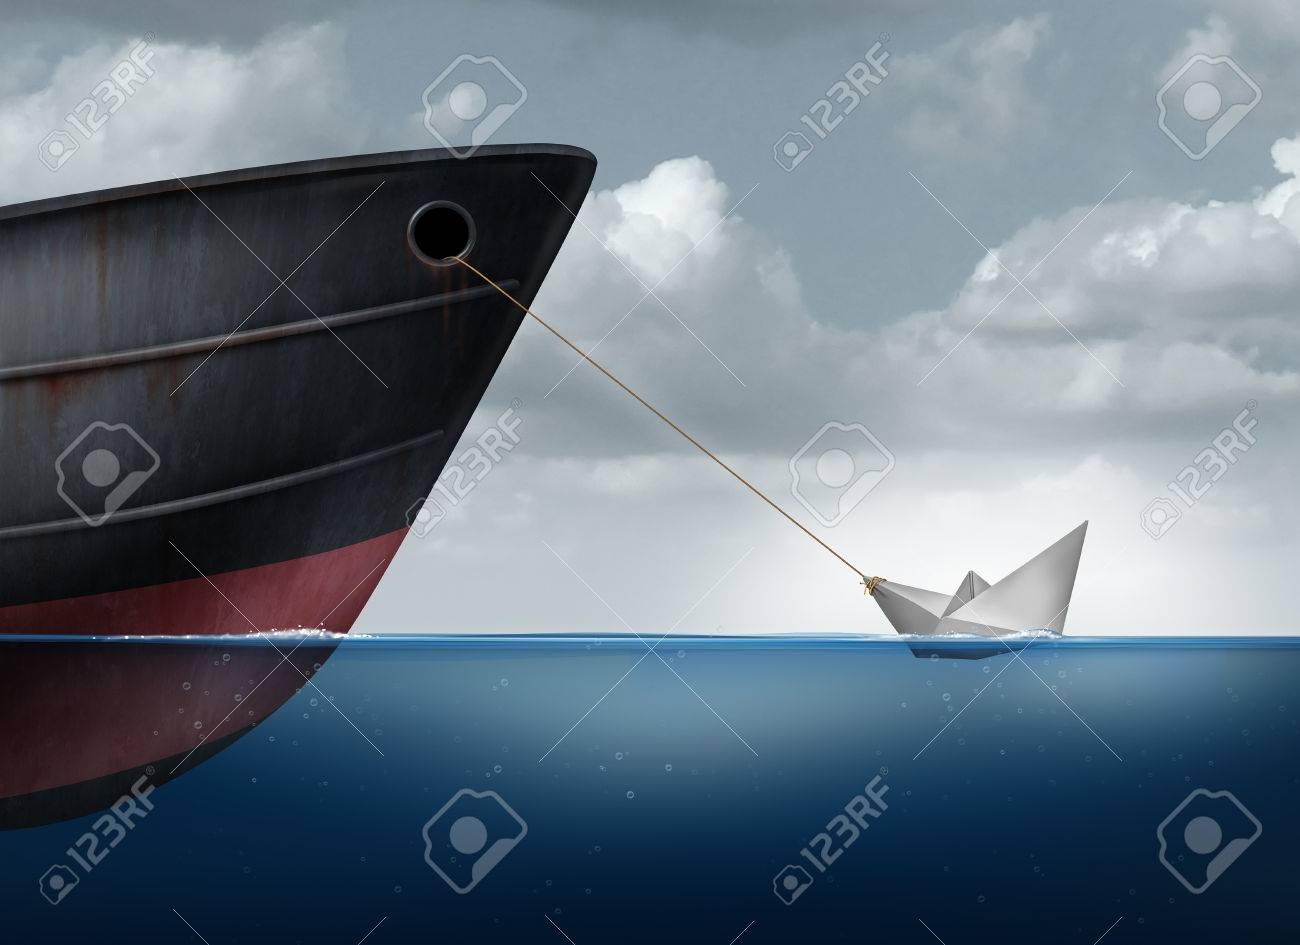 Amazing power concept as a small paper boat in the ocean pulling a huge metal ship as an overachiever metaphor for maximizing potential and business motivation for accomplishing impossible tasks through belief and determination. Stock Photo - 48667081